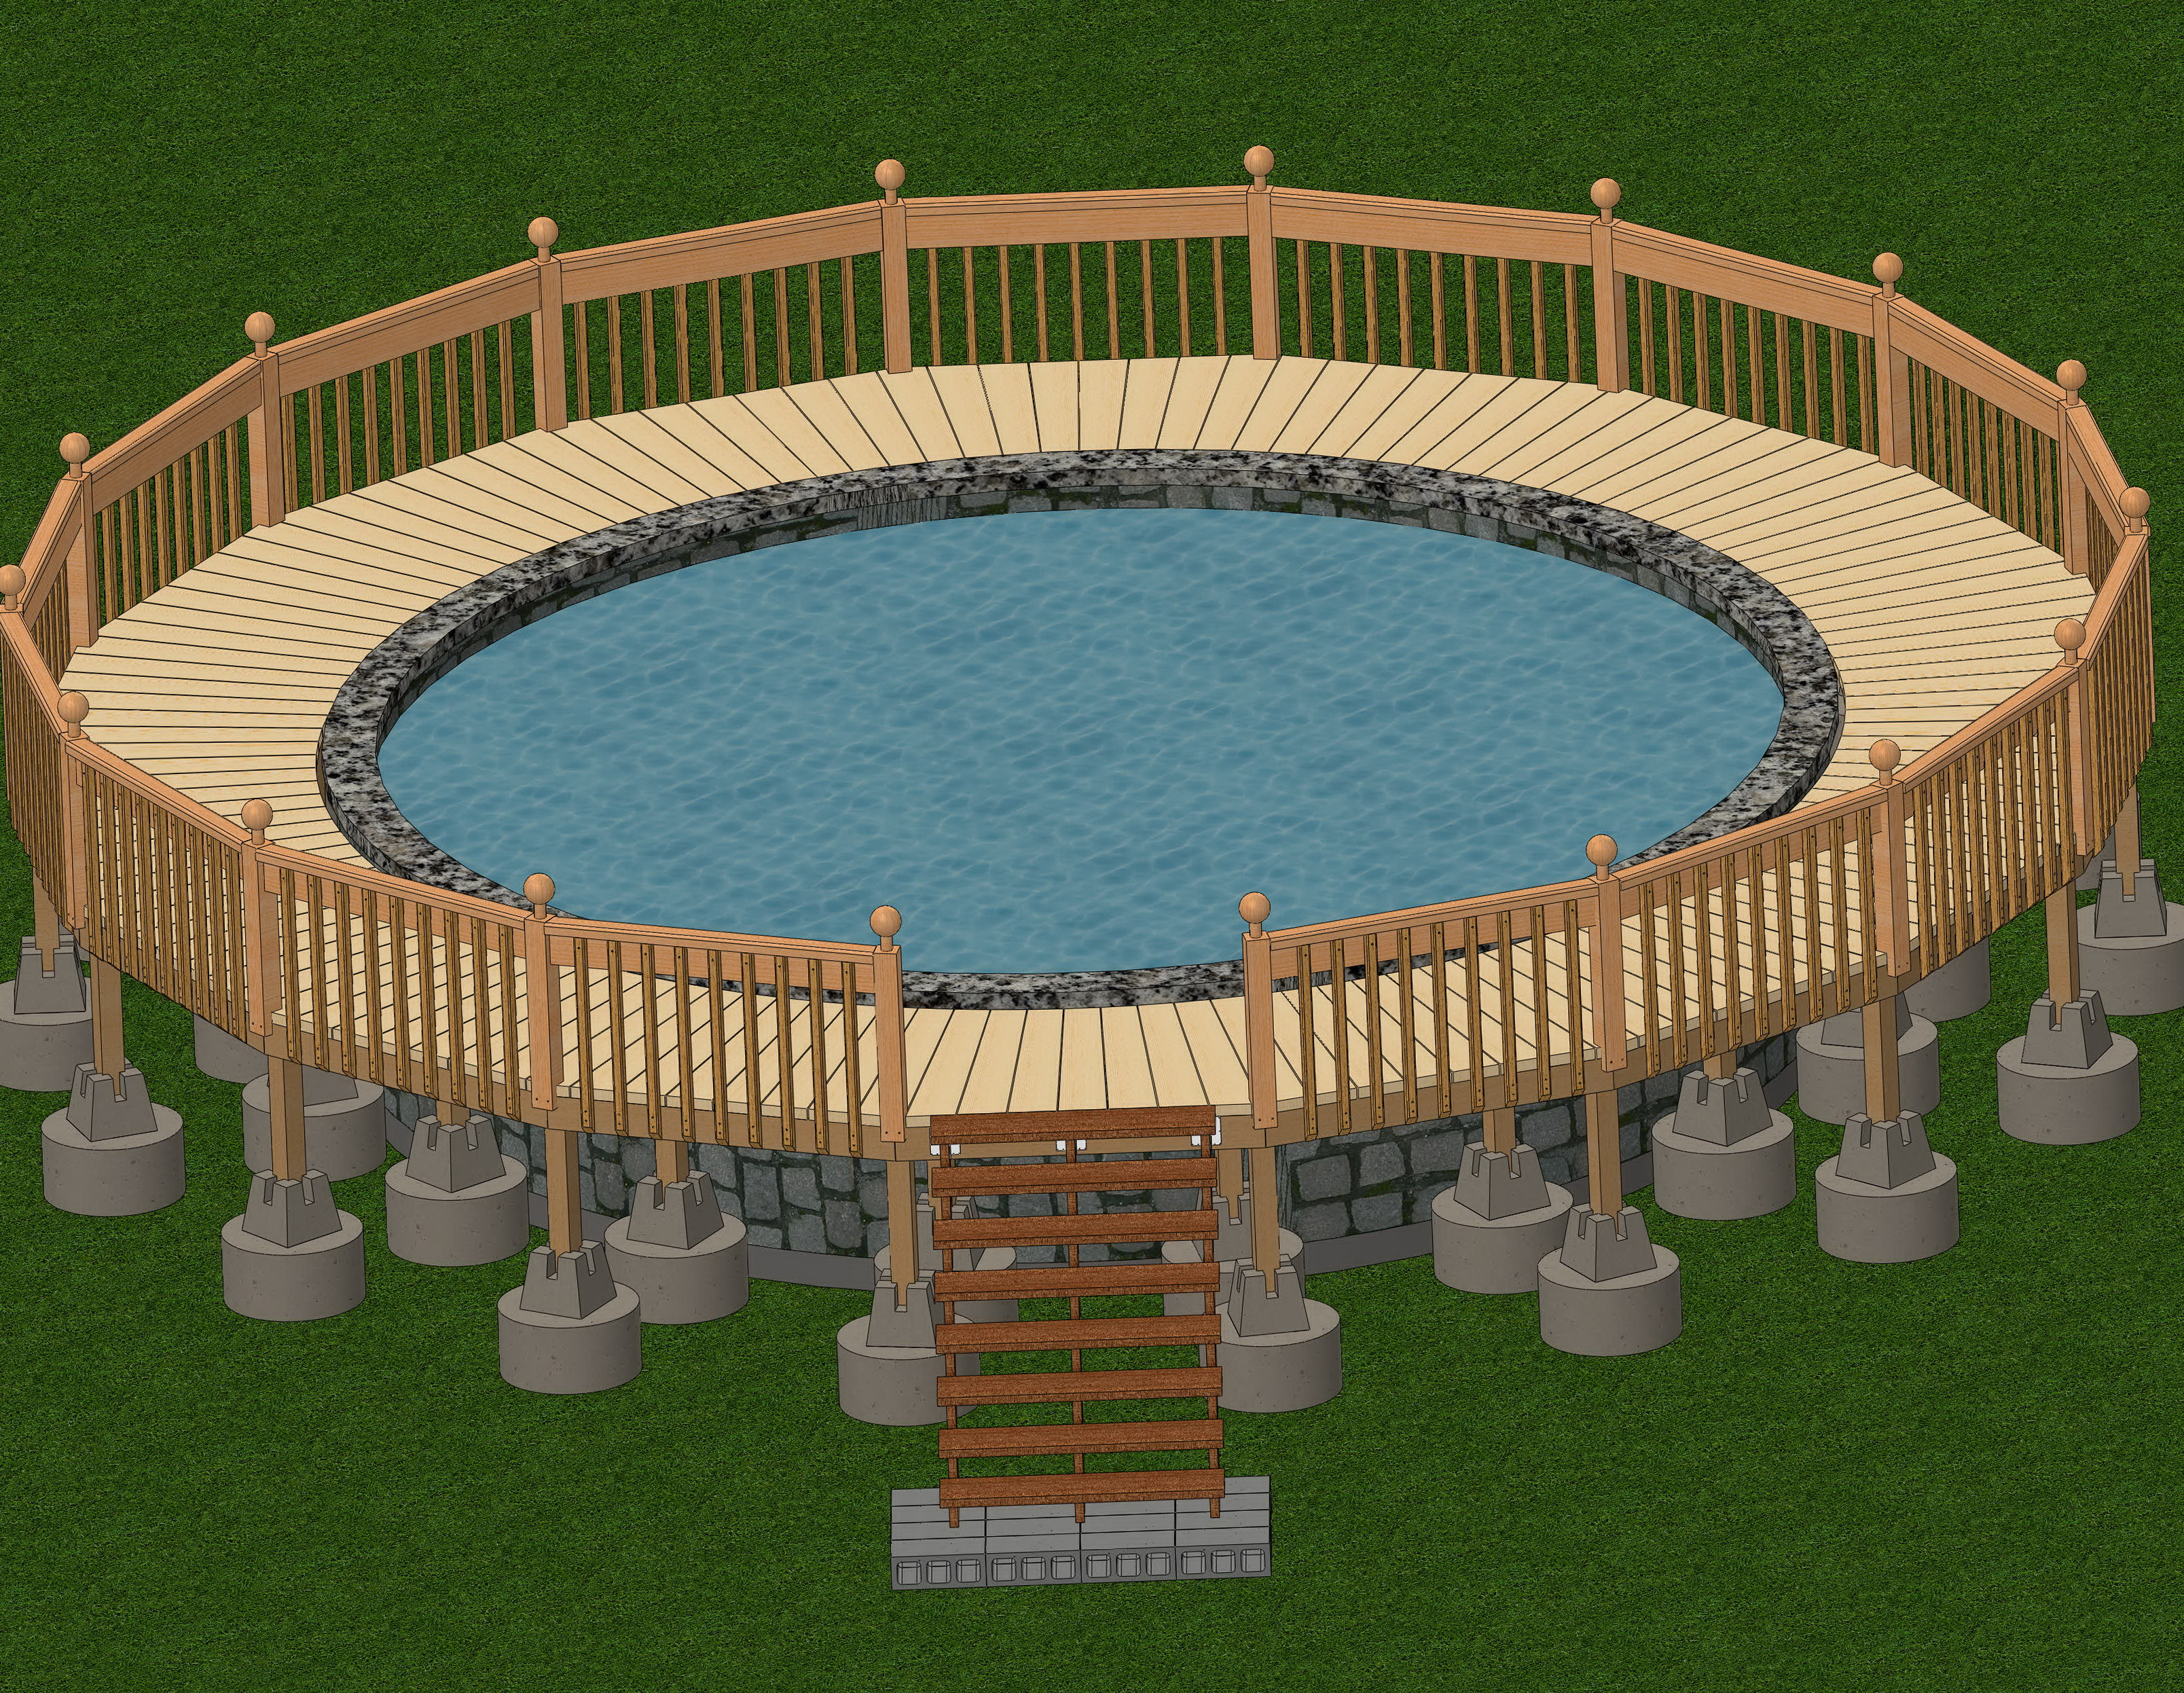 Deck Plans For Above Ground Pools 24'